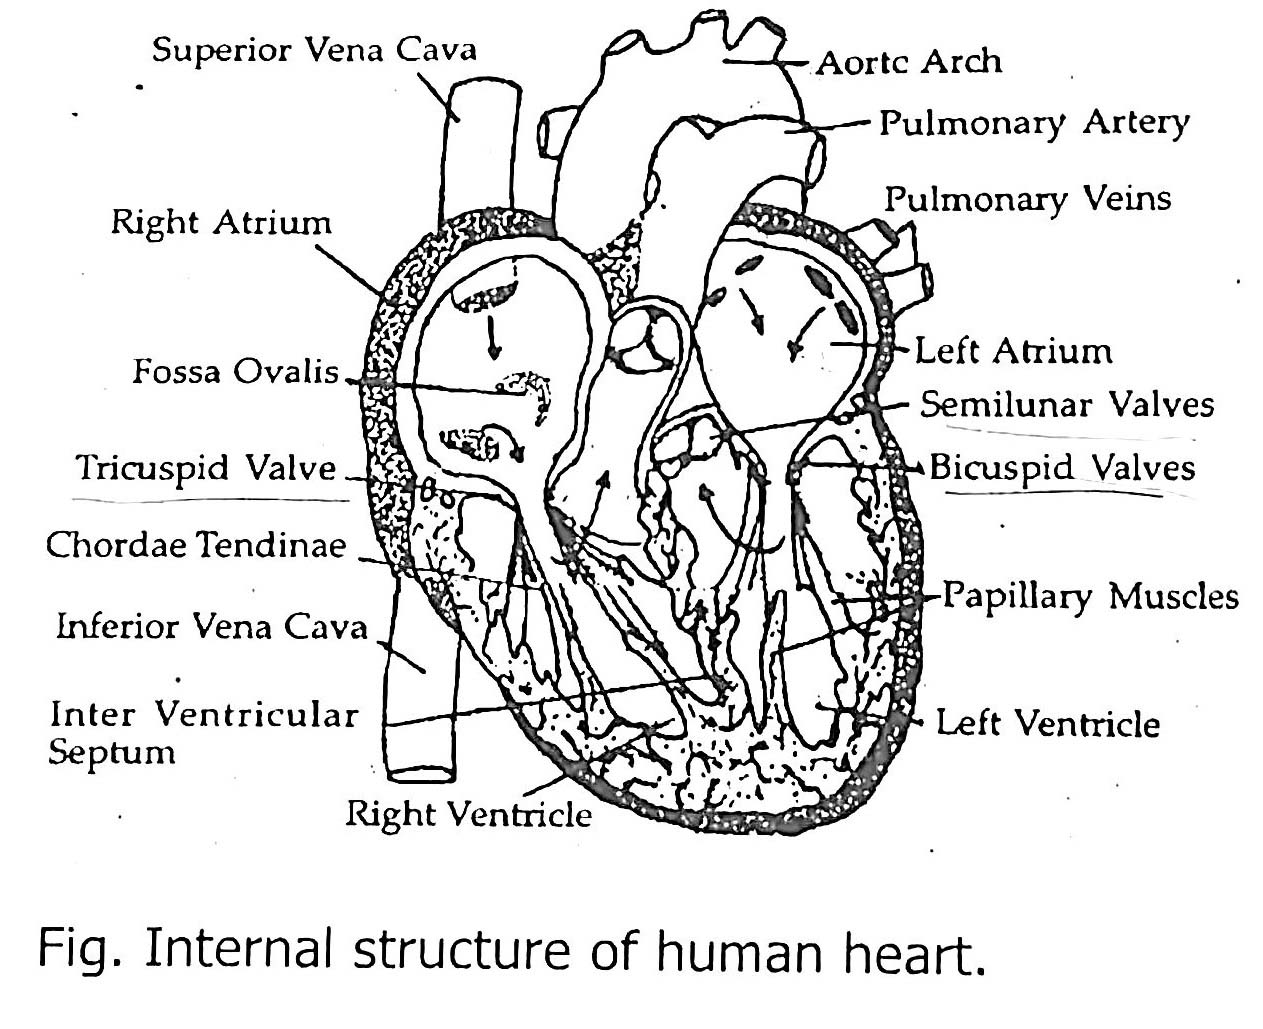 The Internal Structure Of Human Heart